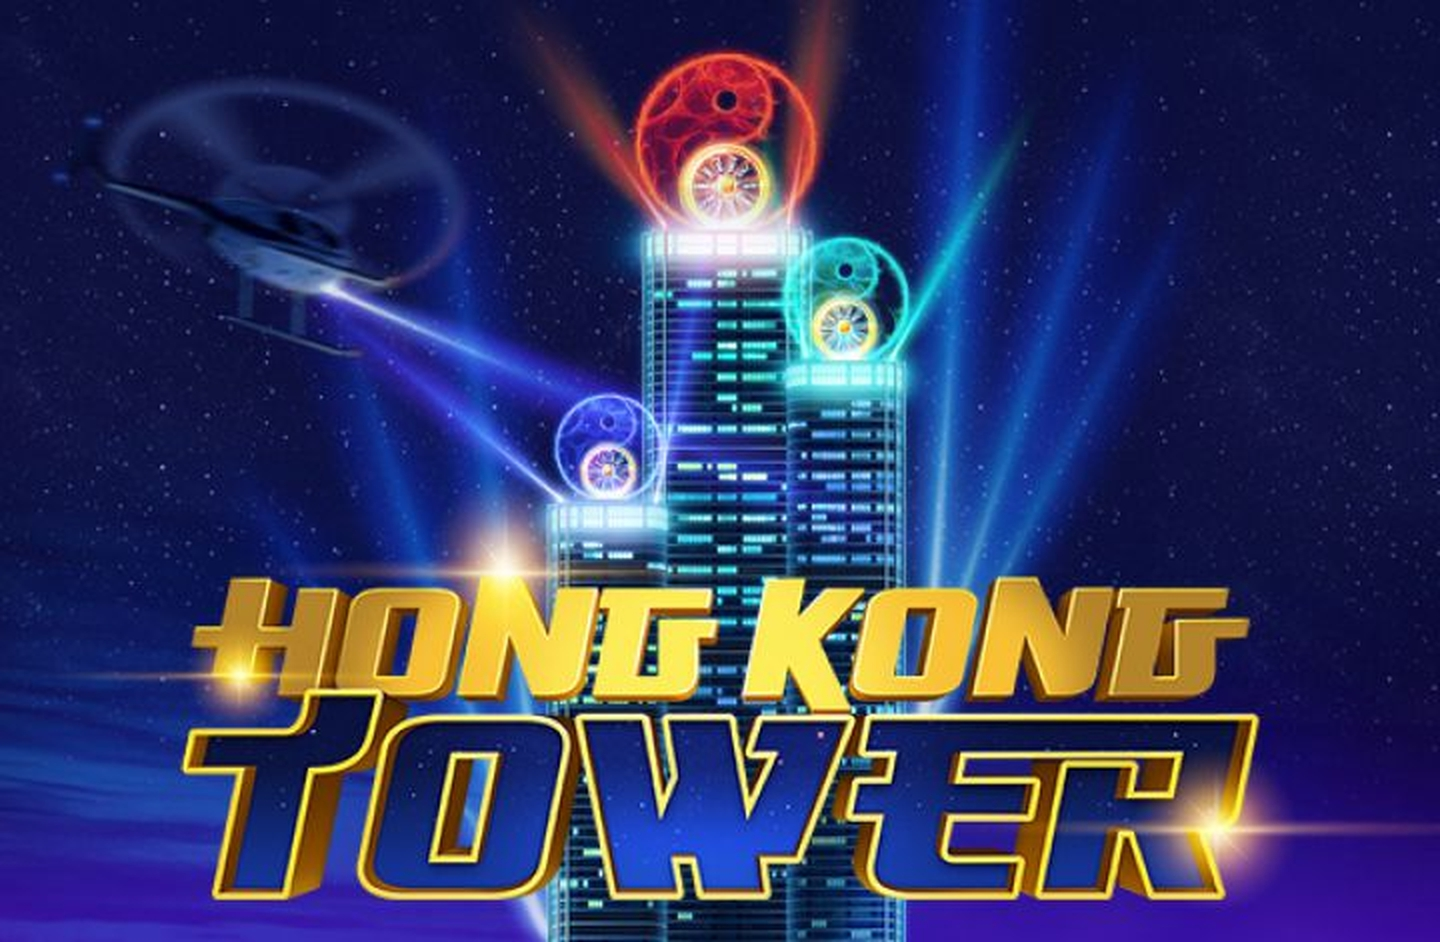 The Hong Kong Tower Online Slot Demo Game by ELK Studios